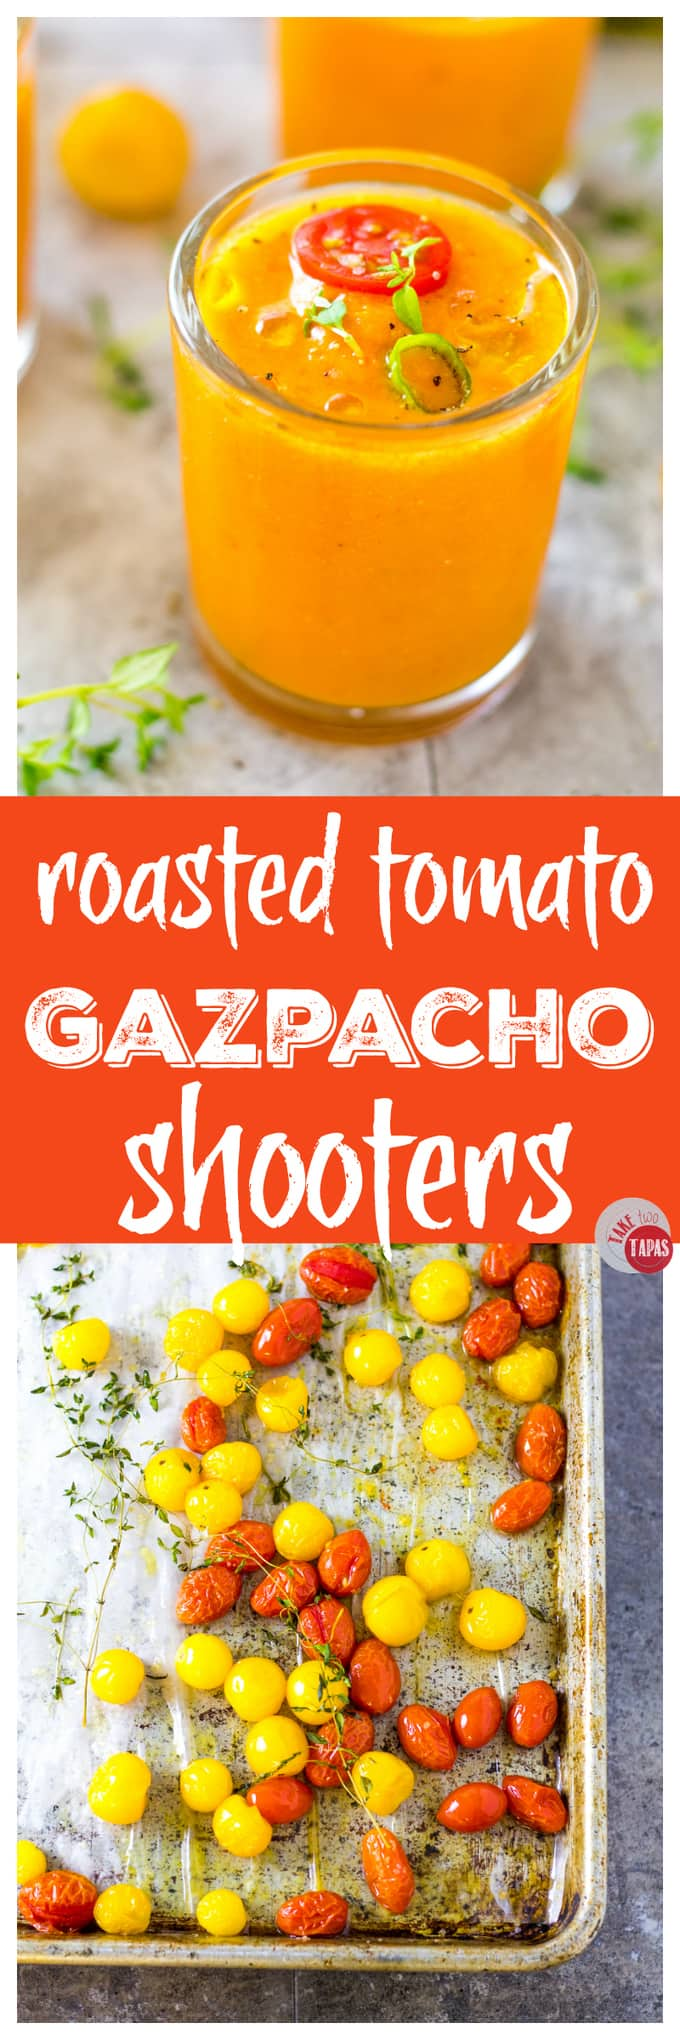 Roasted Tomato Gazpacho Shooters for your tapas party | Take Two Tapas